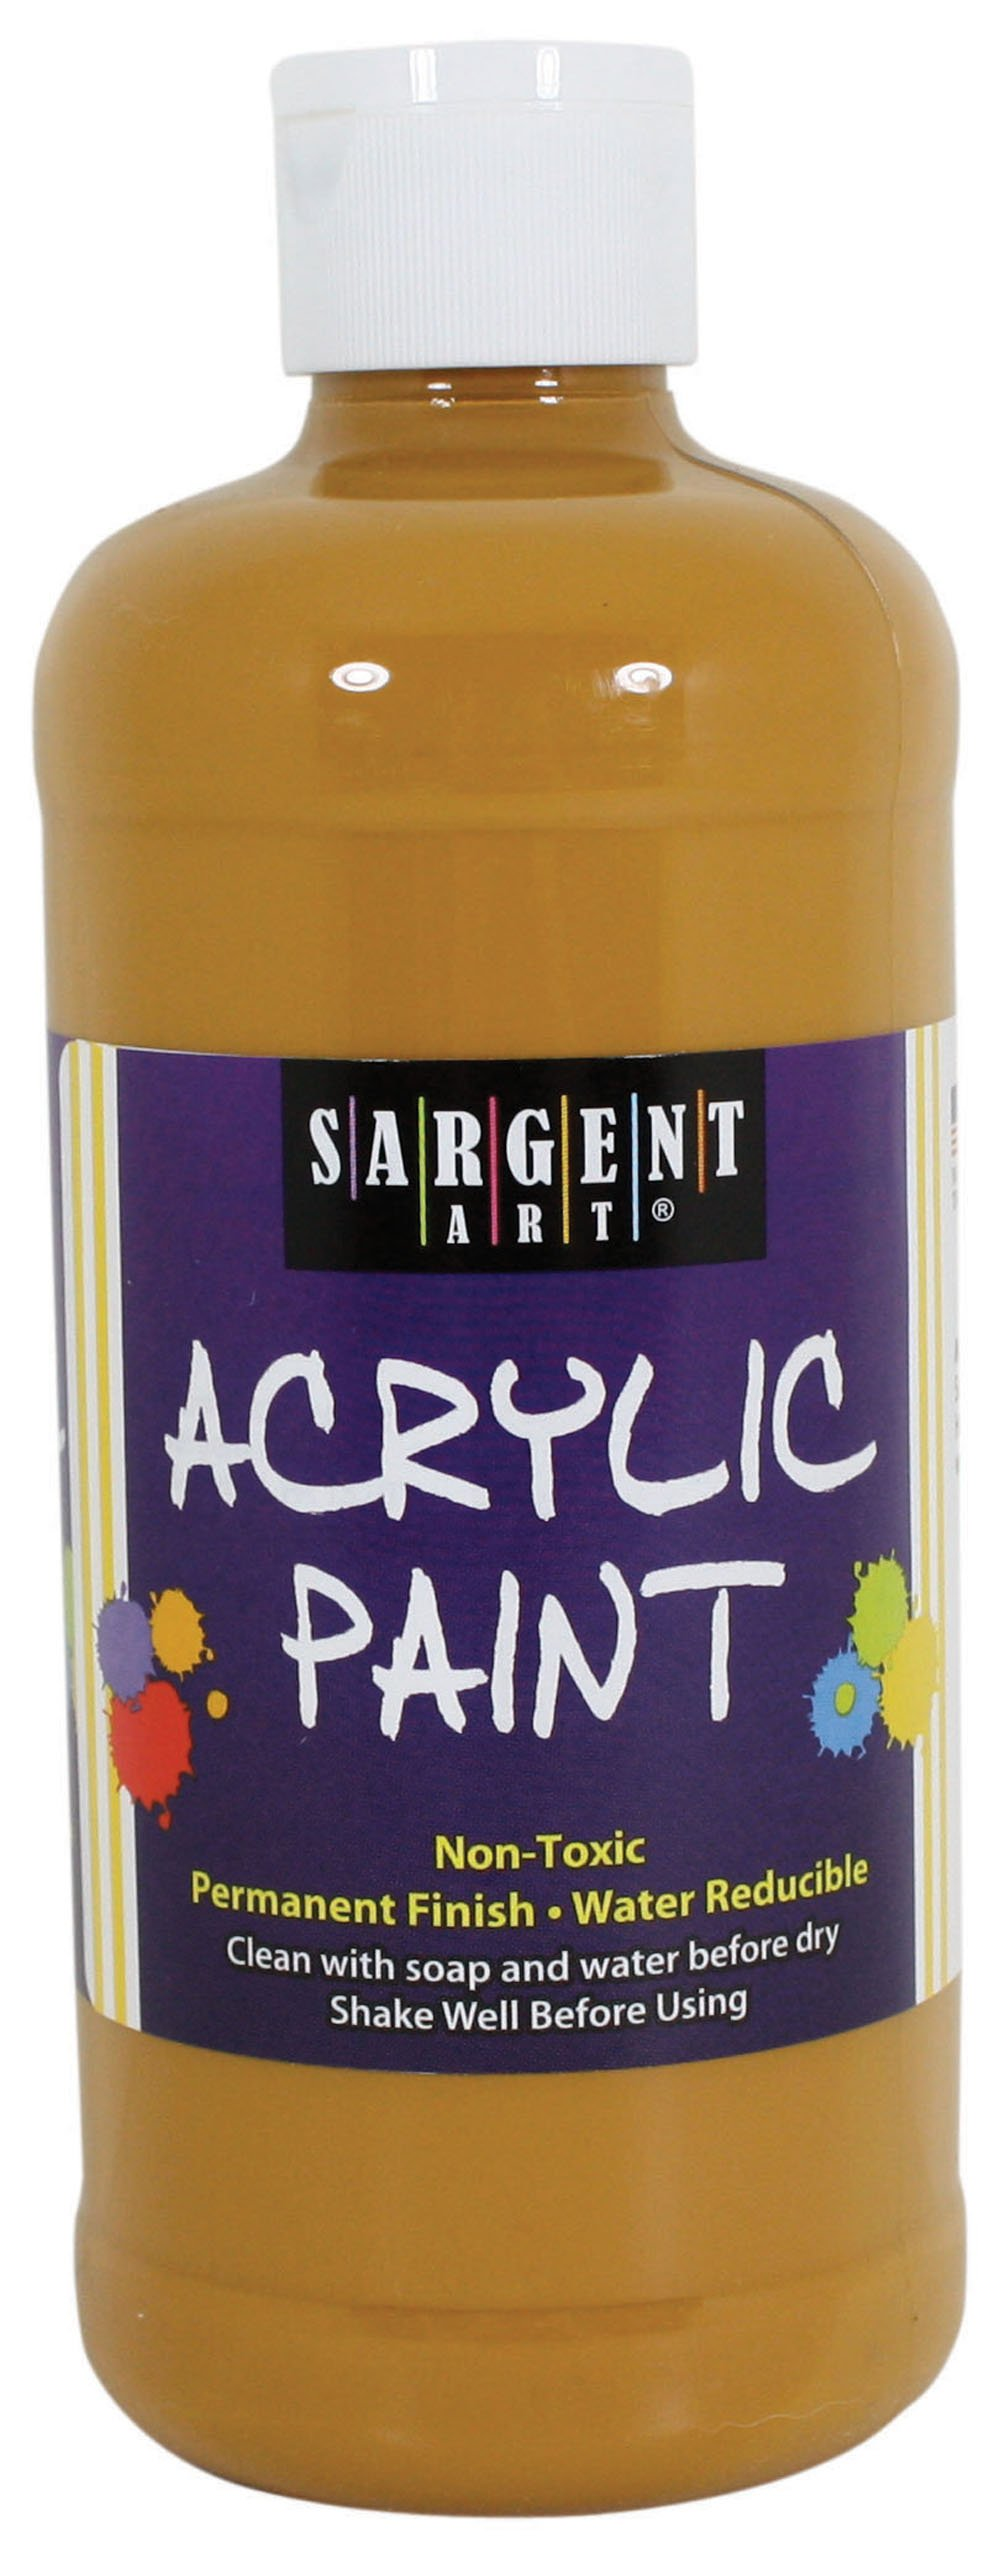 Sargent Art 24-2427 16-Ounce Acrylic Paint, Yellow-Oxide